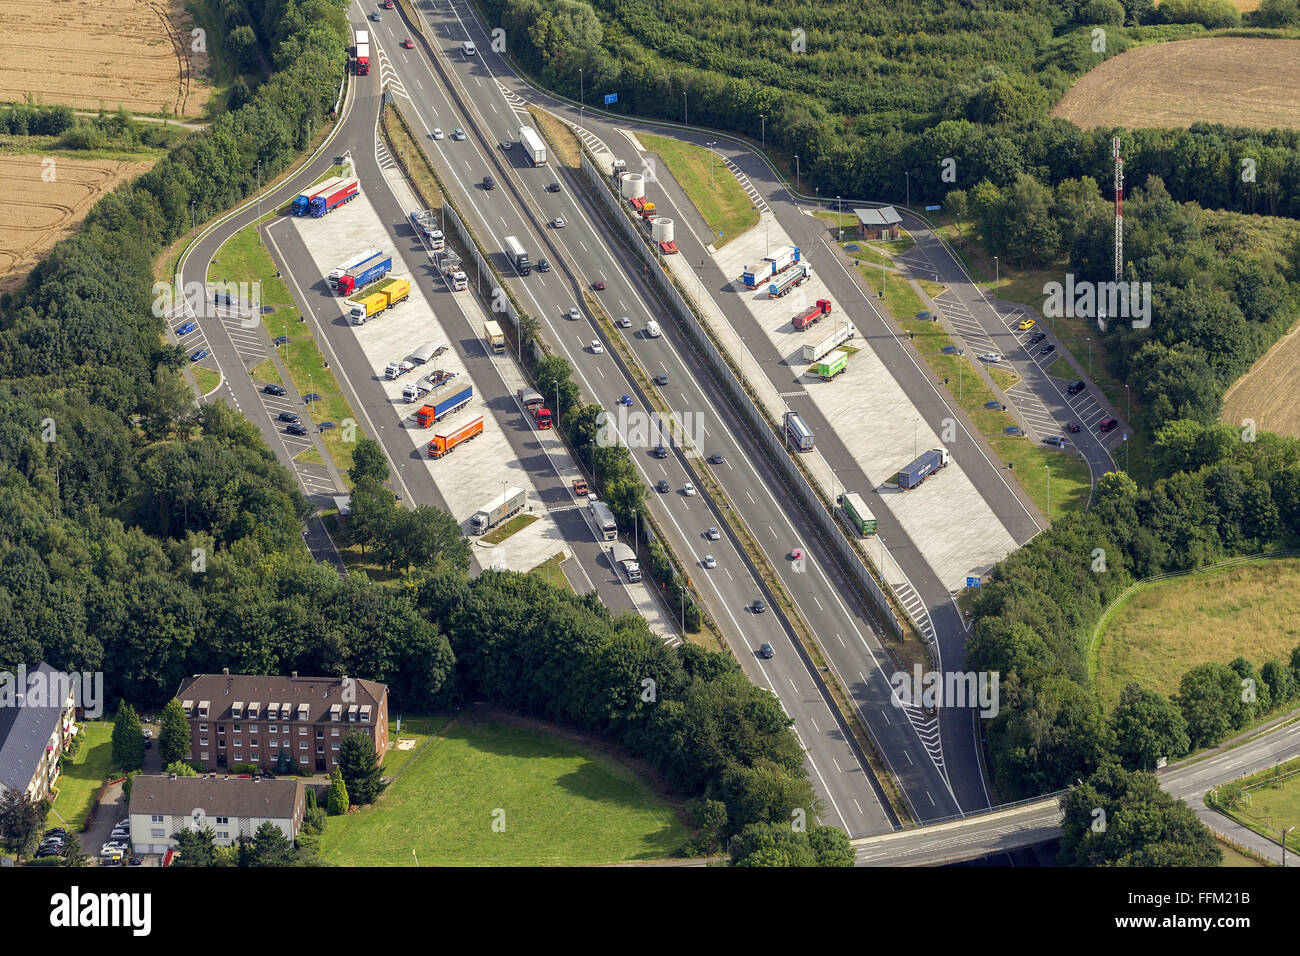 Aerial view, highway rest area Westerfilde Kirchlinde A45, Dortmund